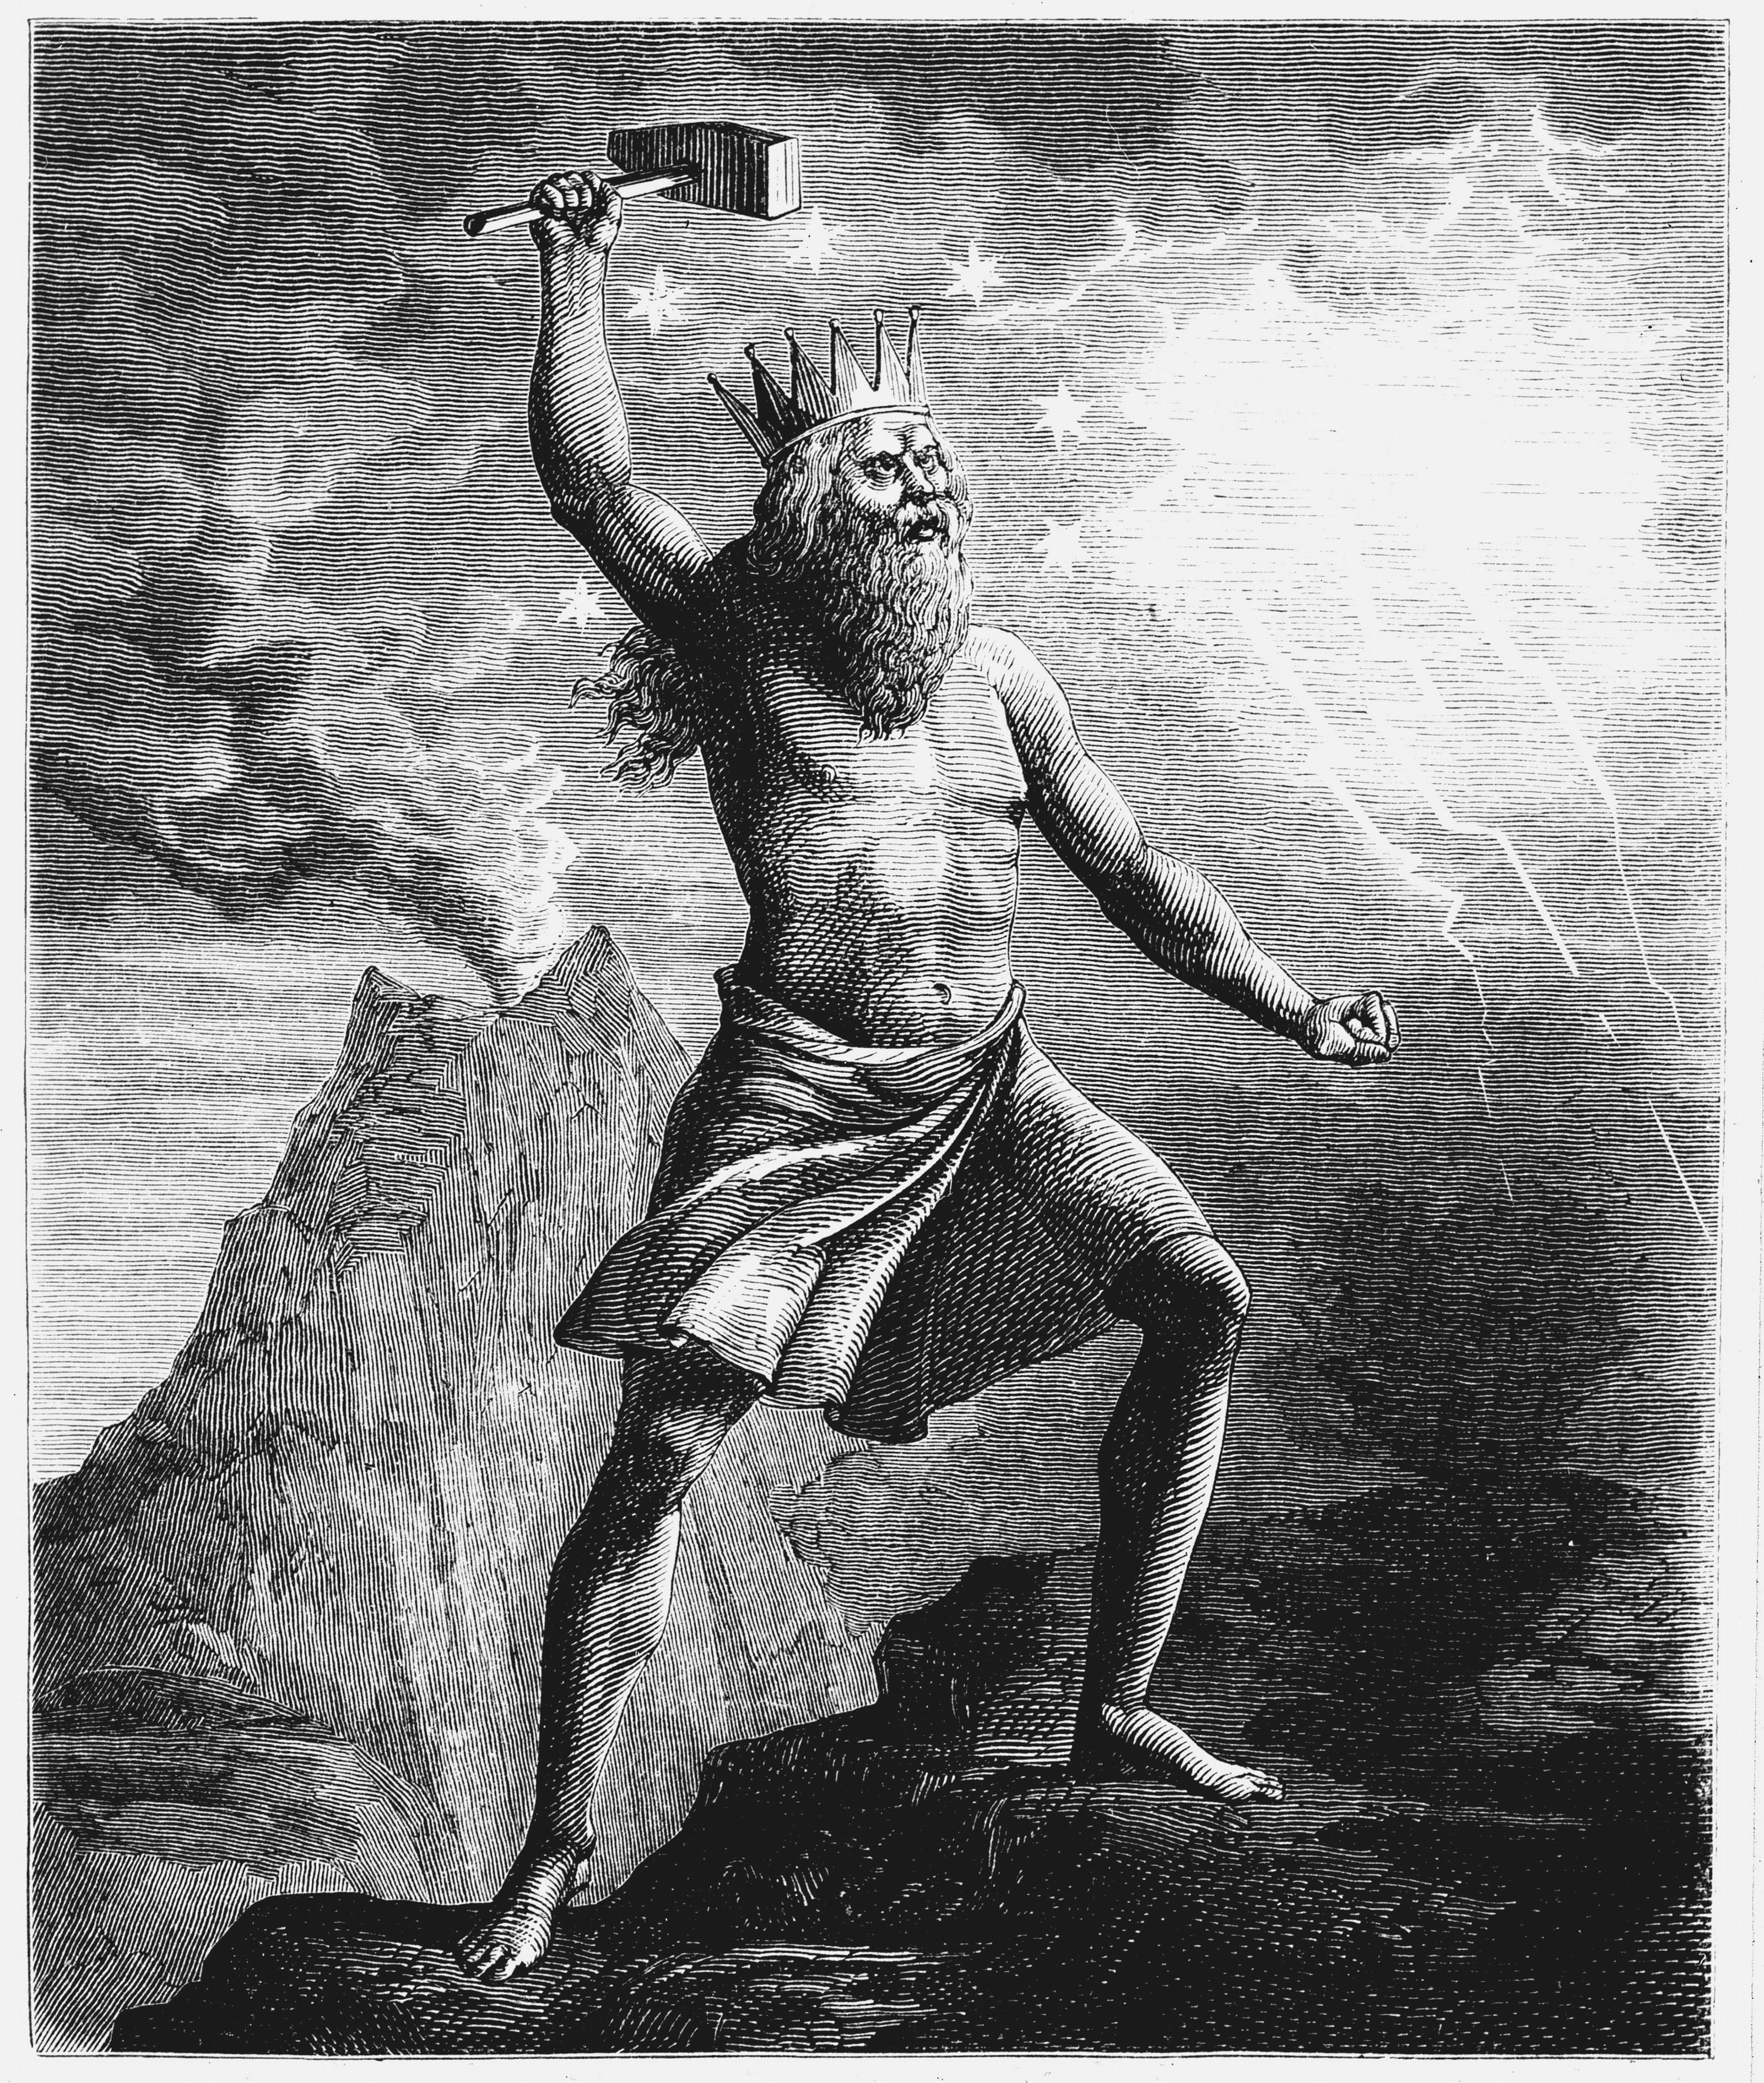 Thor, son of Woden or Odin, god of thunder in the Scandinavian pantheon